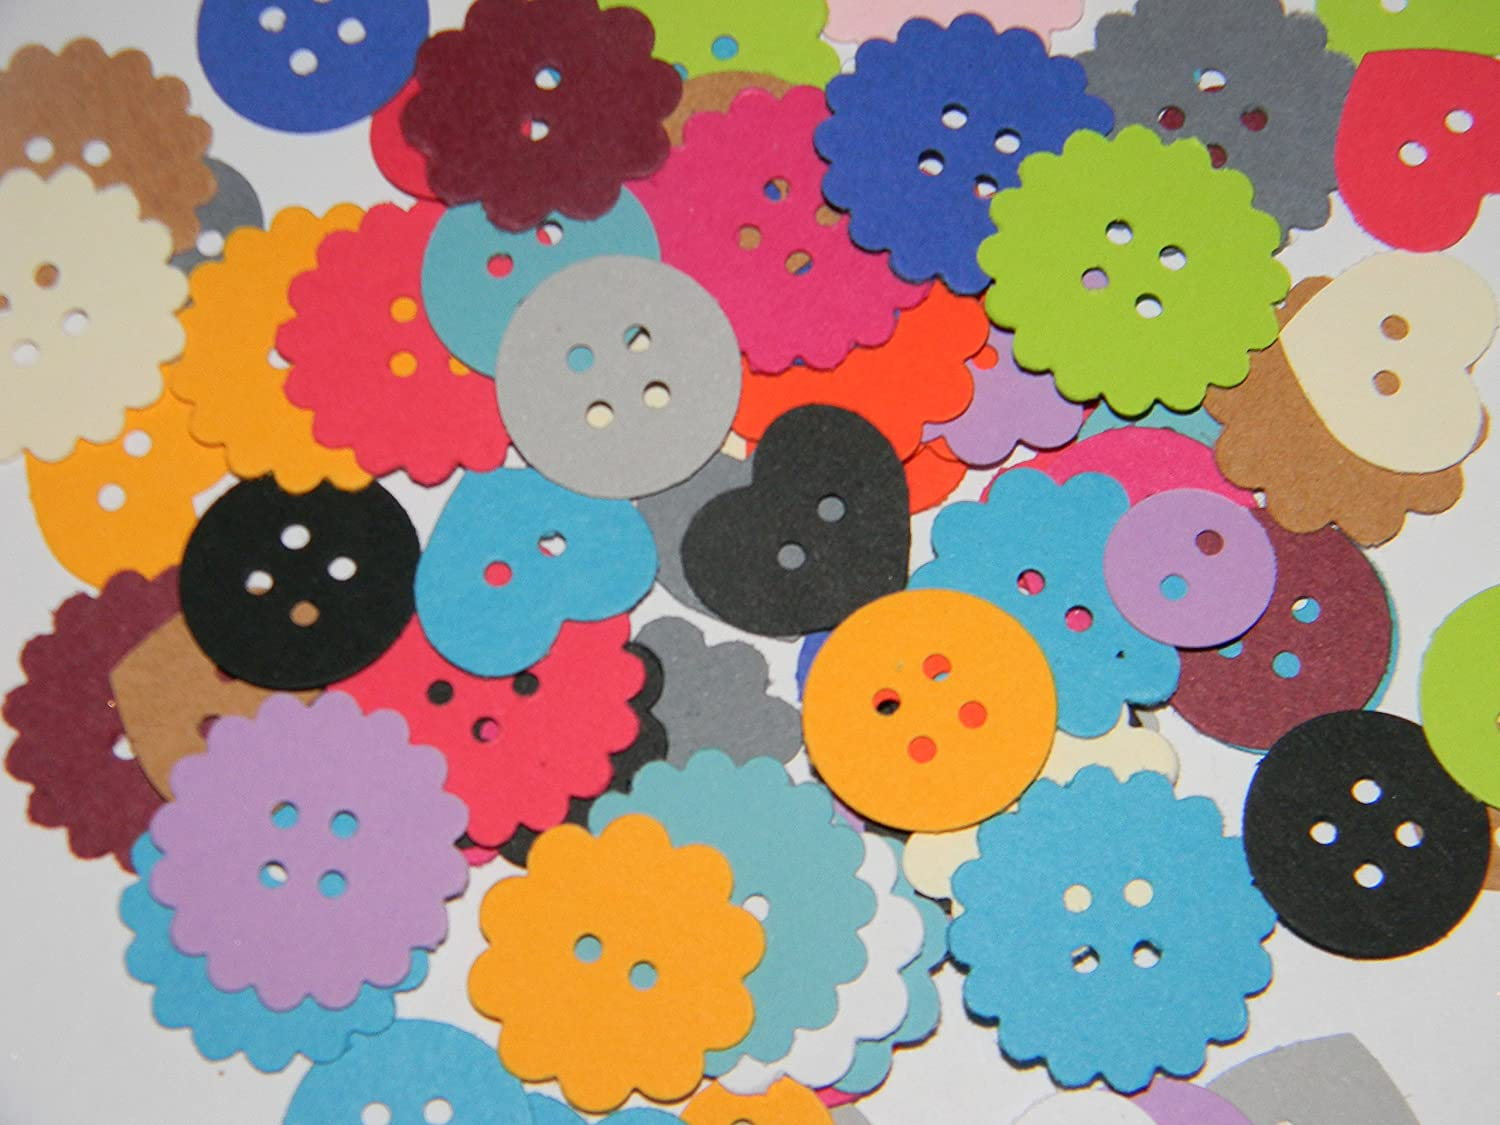 100 70% OFF Outlet mixed colored paper Selling buttons confetti hand punched die cuts w